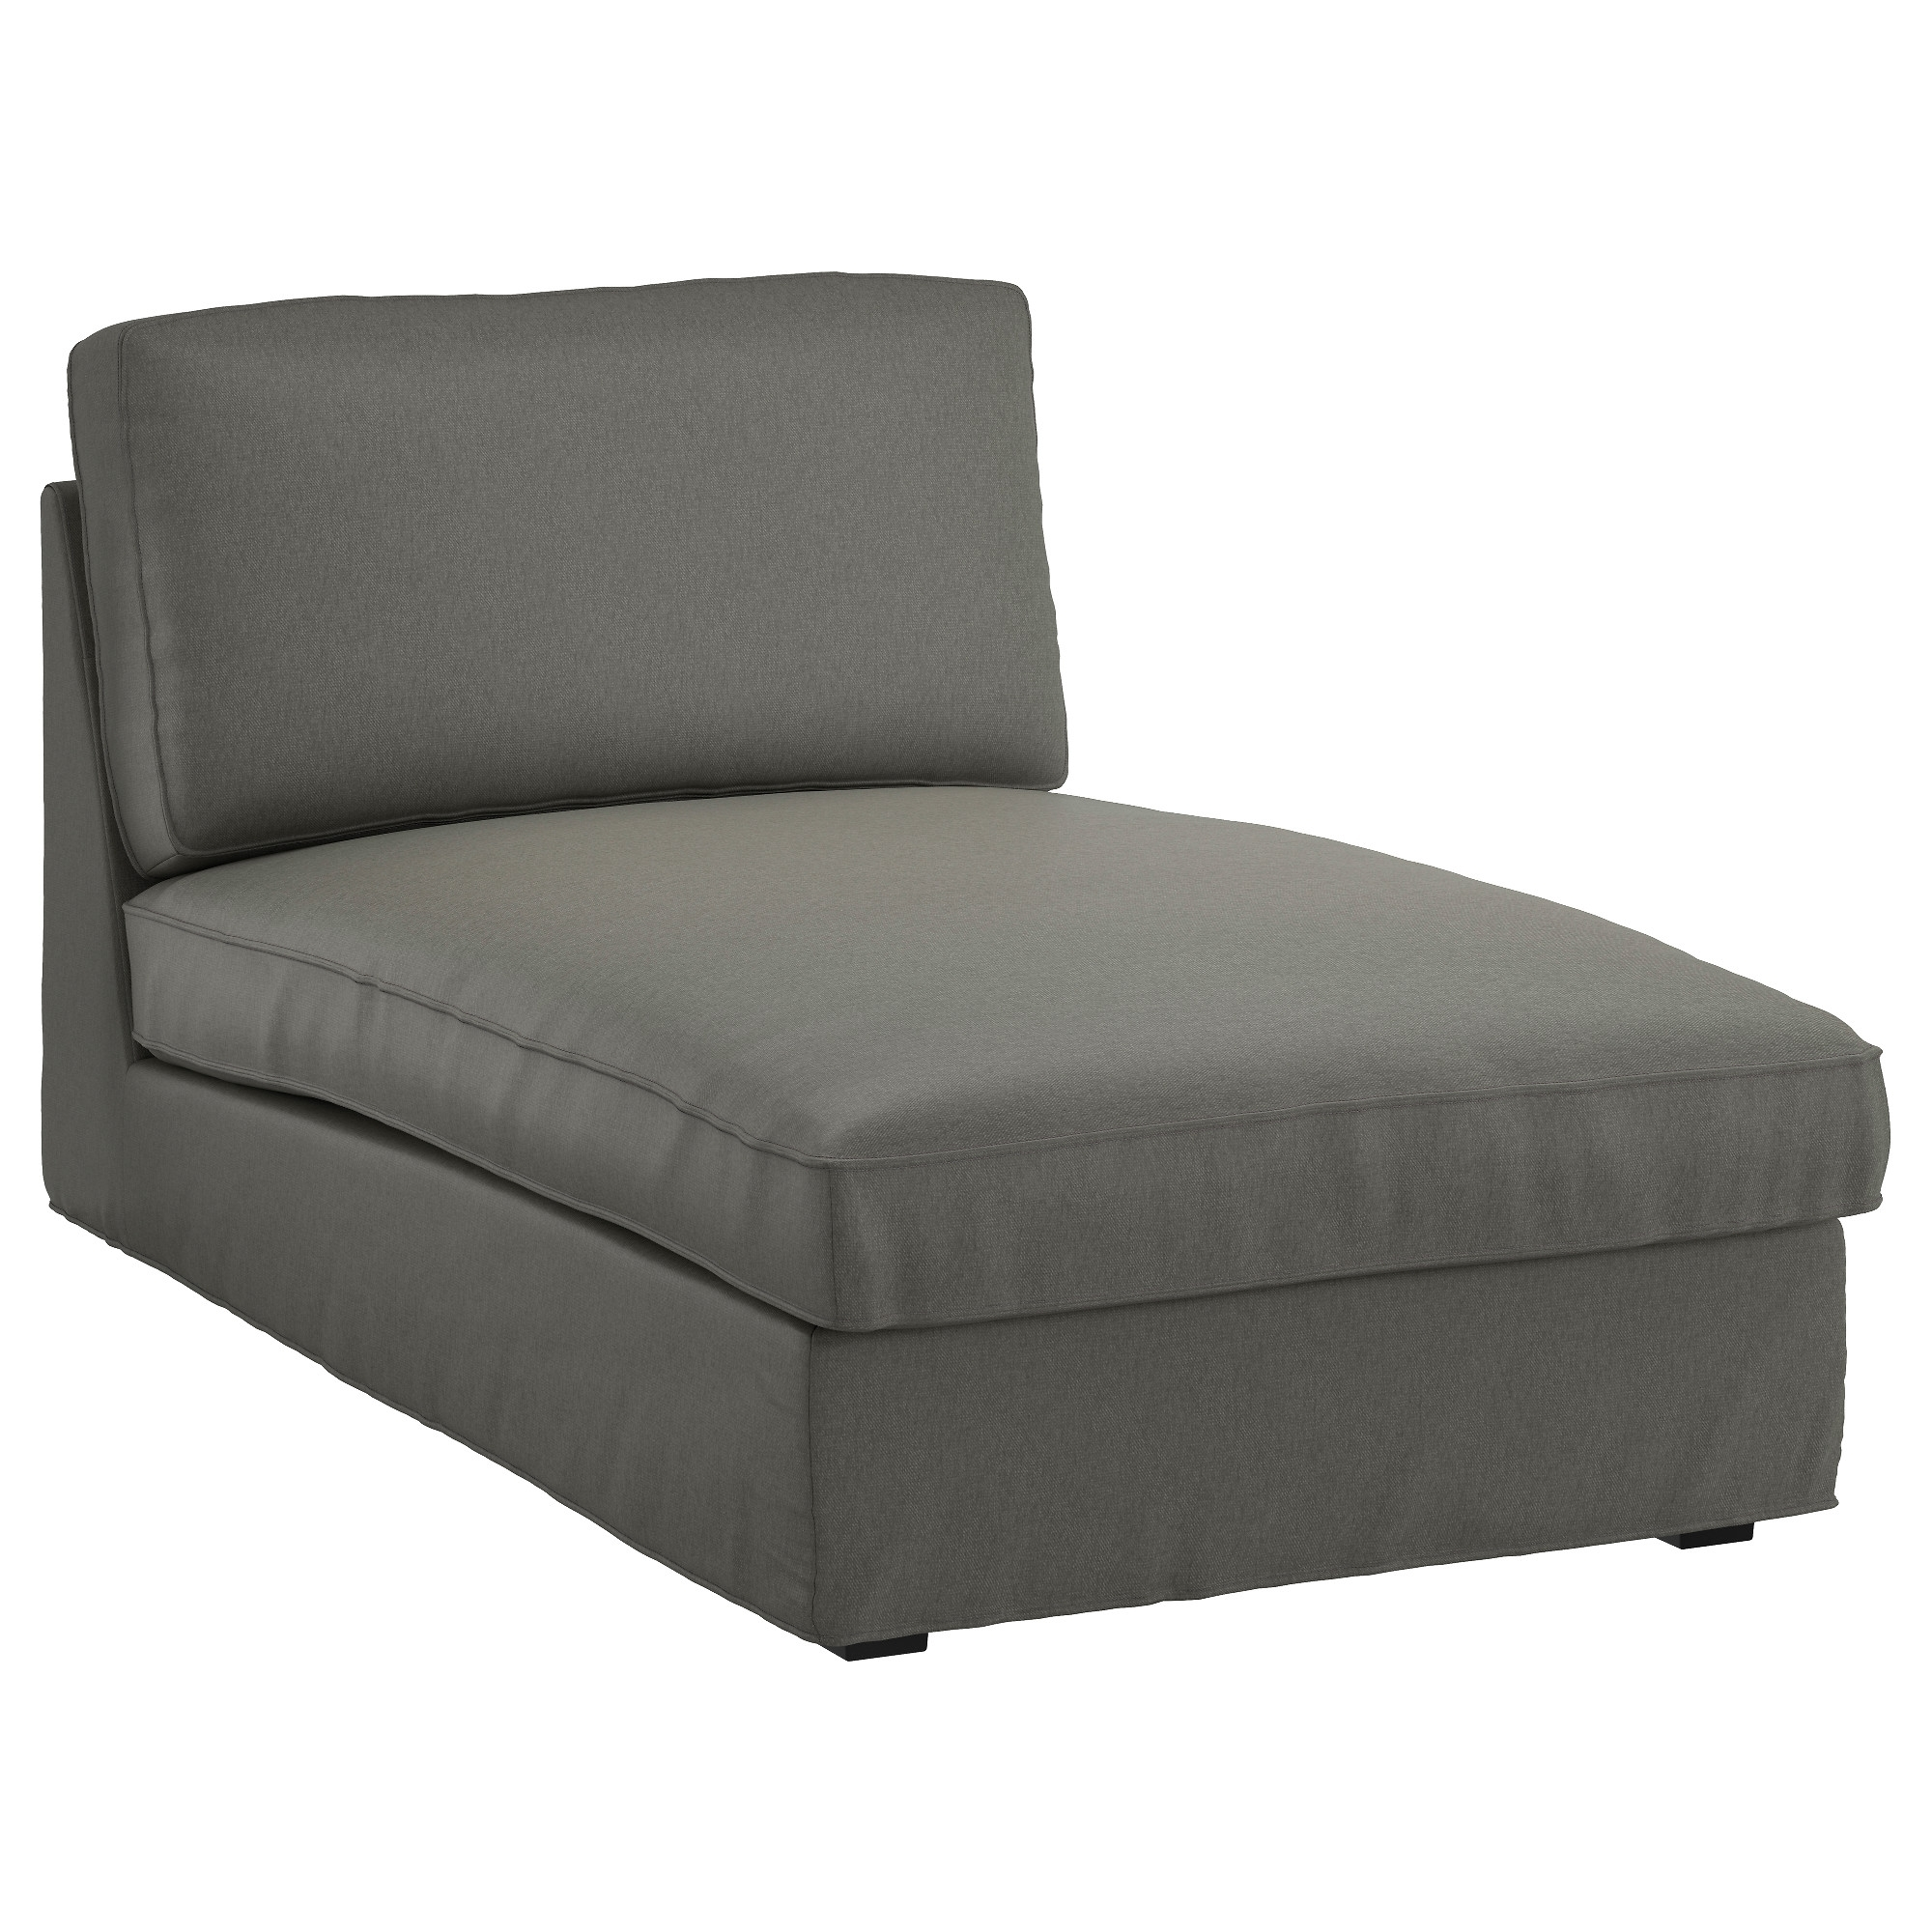 Favorite Kivik Chaise Longue Borred Grey Green – Ikea Intended For Ikea Chaise Sofas (View 7 of 15)